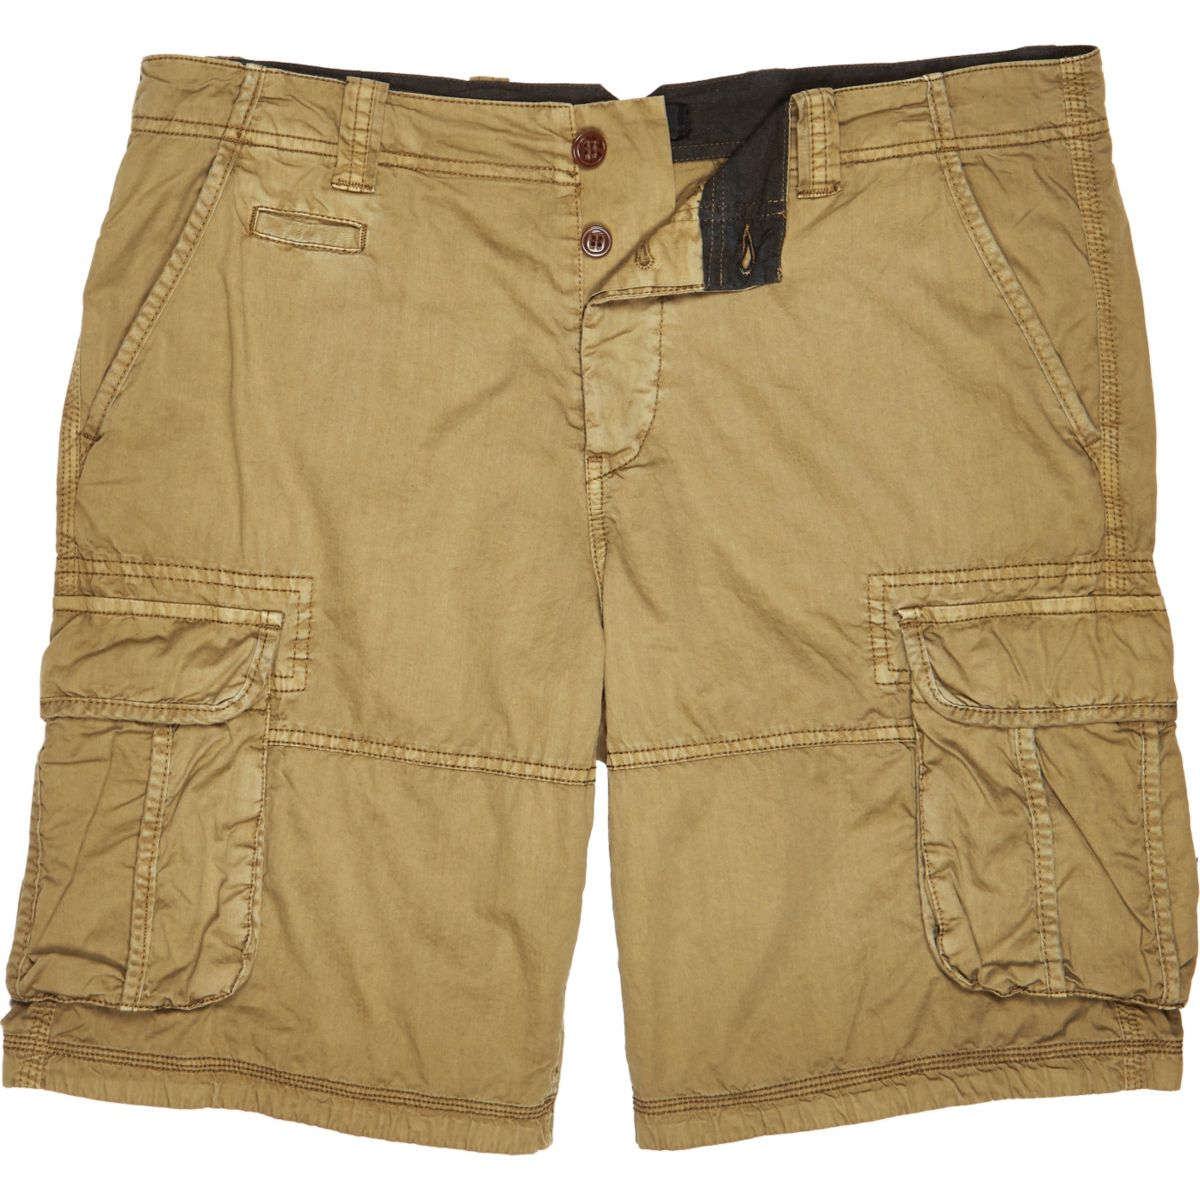 Brown twill cargo knee length shorts